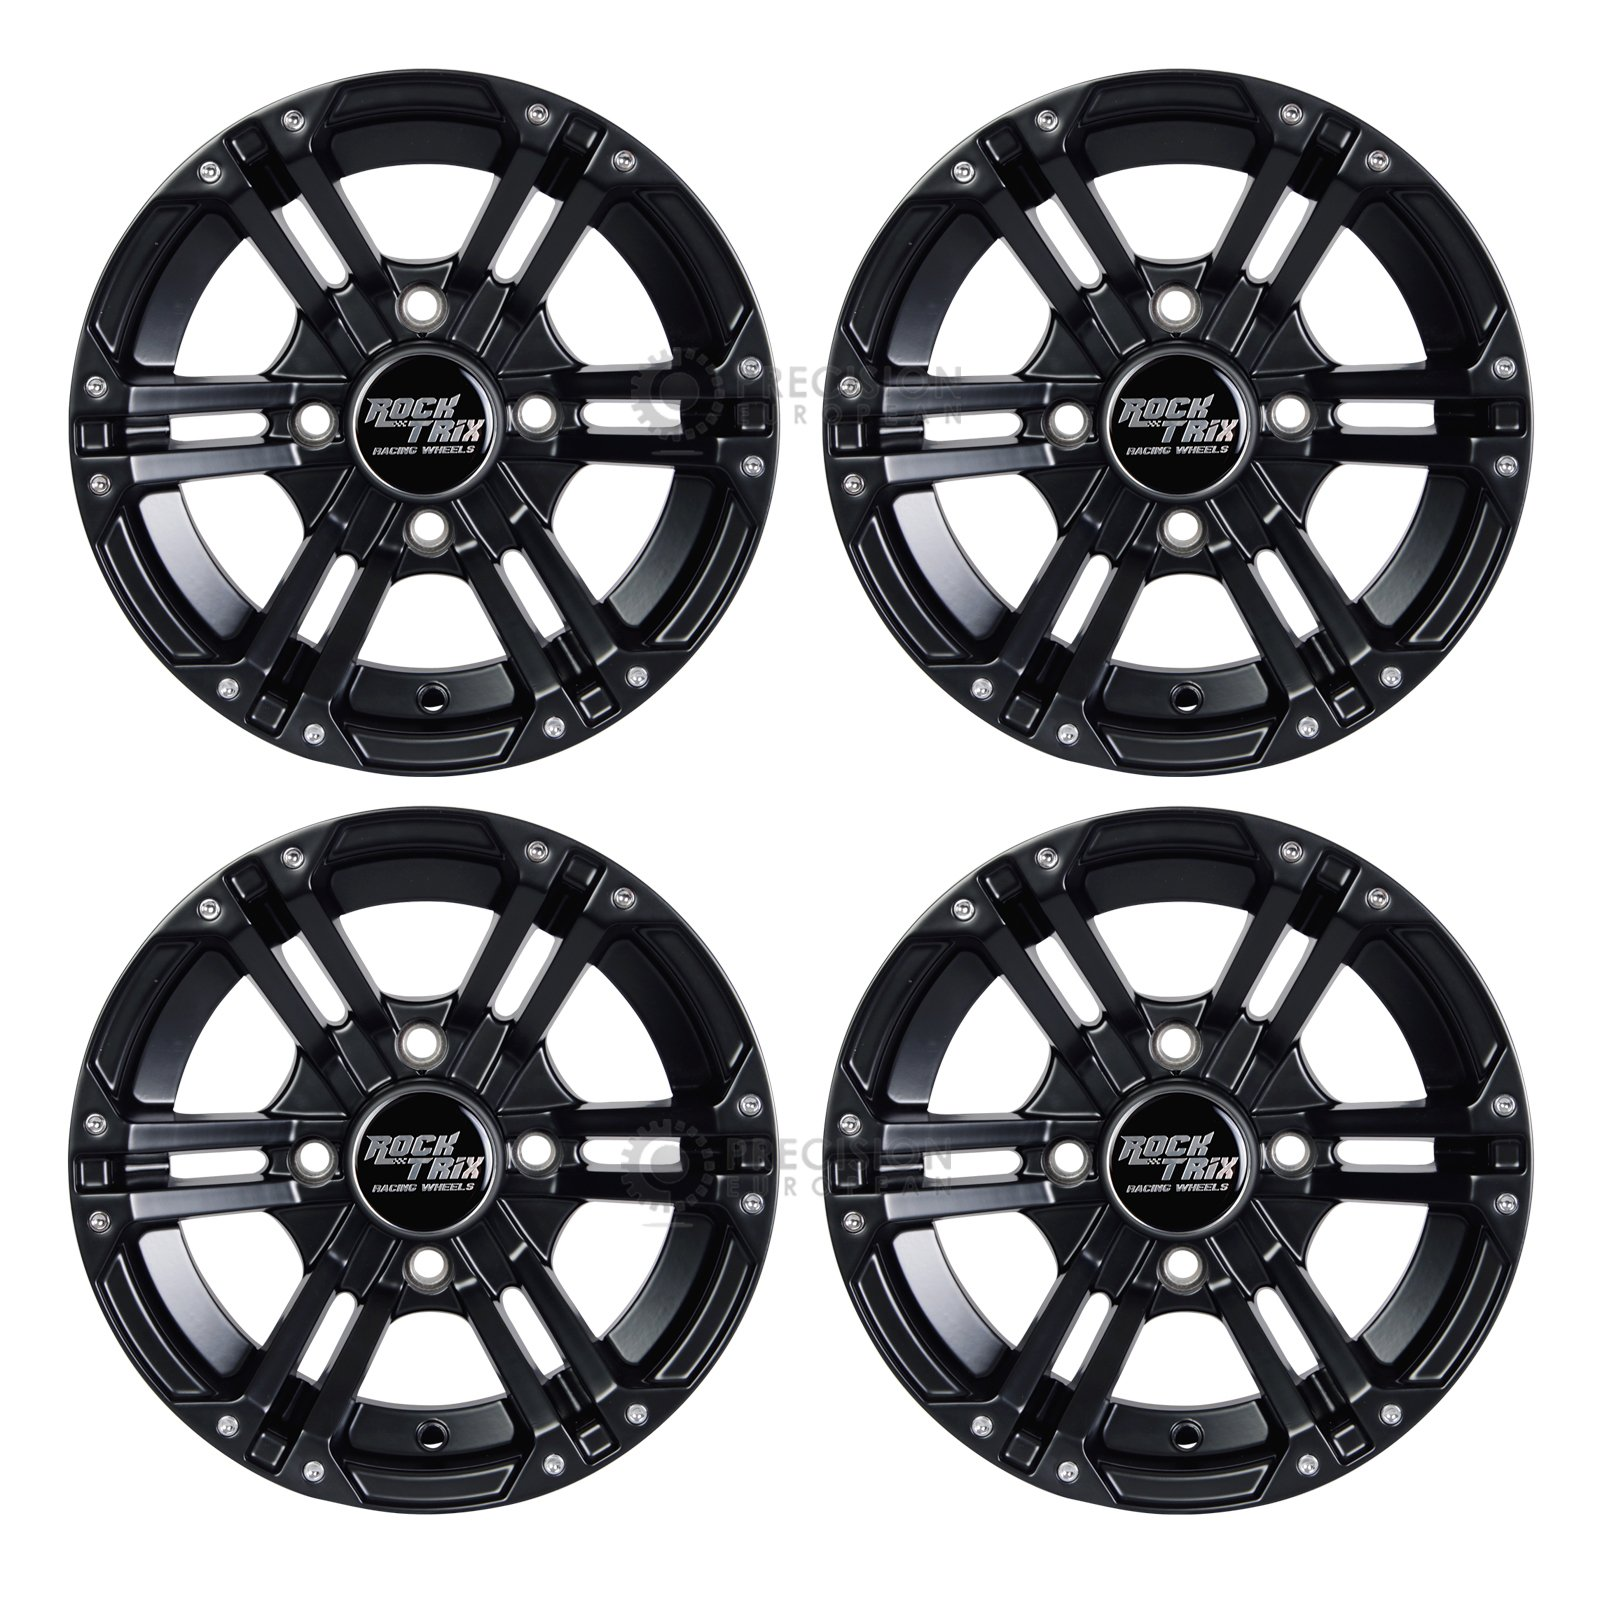 4pc 12'' RockTrix ATV Wheels 4x110 Rims | 12x7 | 5+2 Offset | IRS Vehicles - Honda Kawasaki Yamaha Rincon Rancher Brute Force King Quad Kodiak Grizzly Rhino 4/110 Independent Rear Suspension